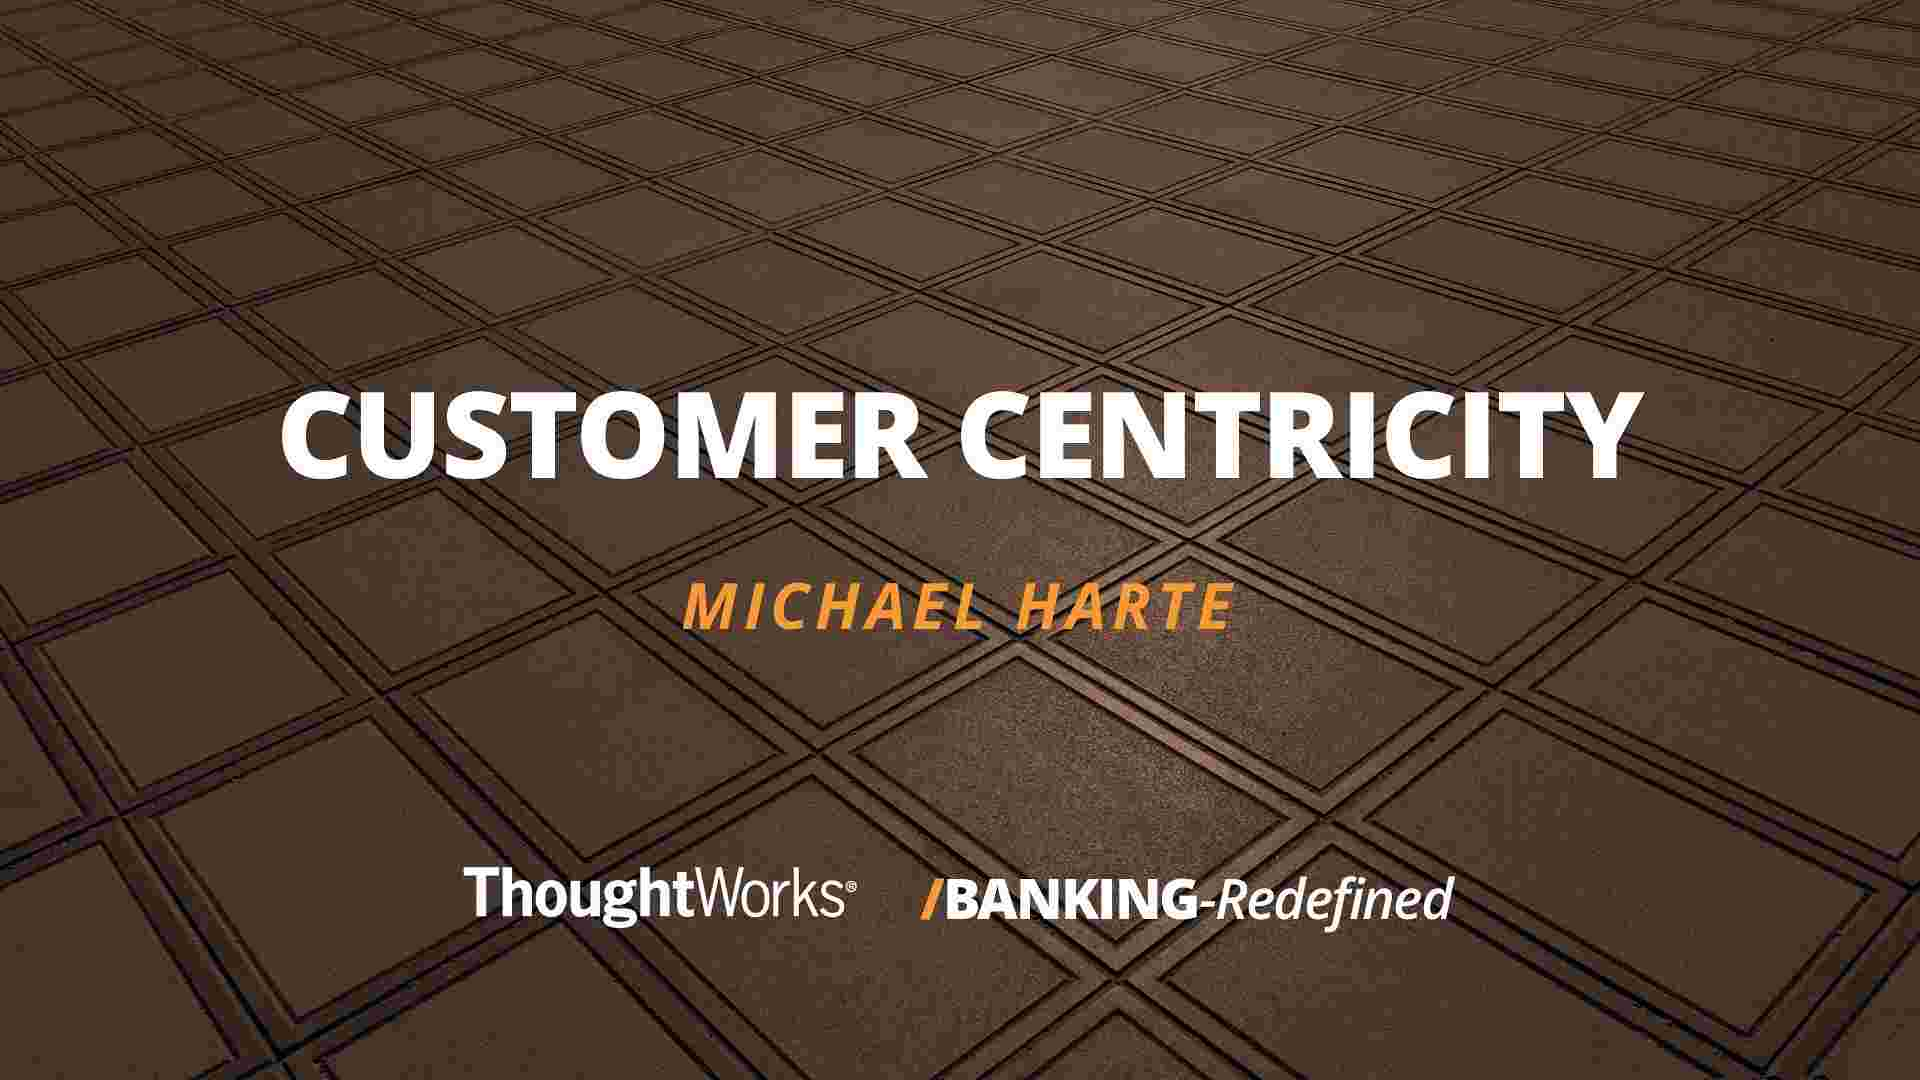 Customer centricity presentation